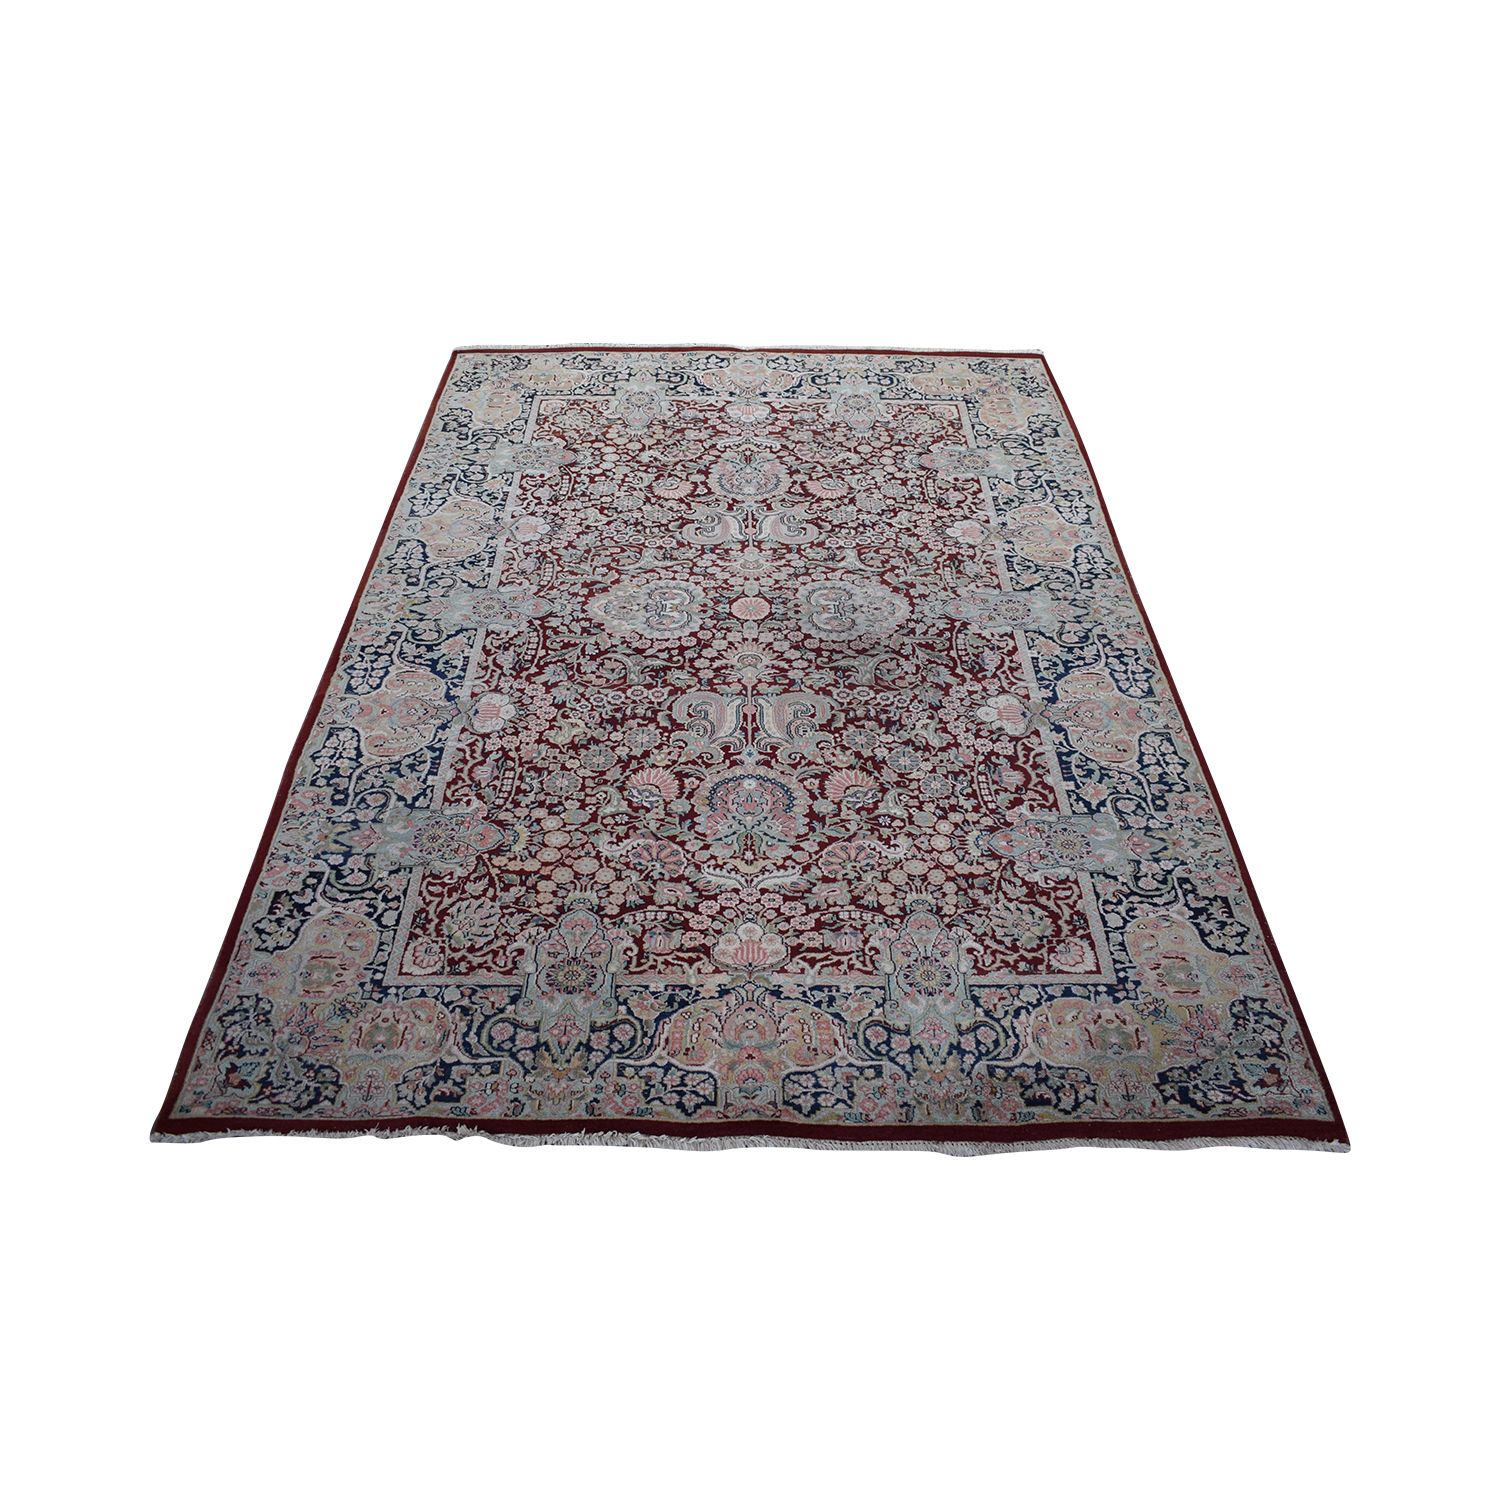 Pakistani Rug with Fringe coupon